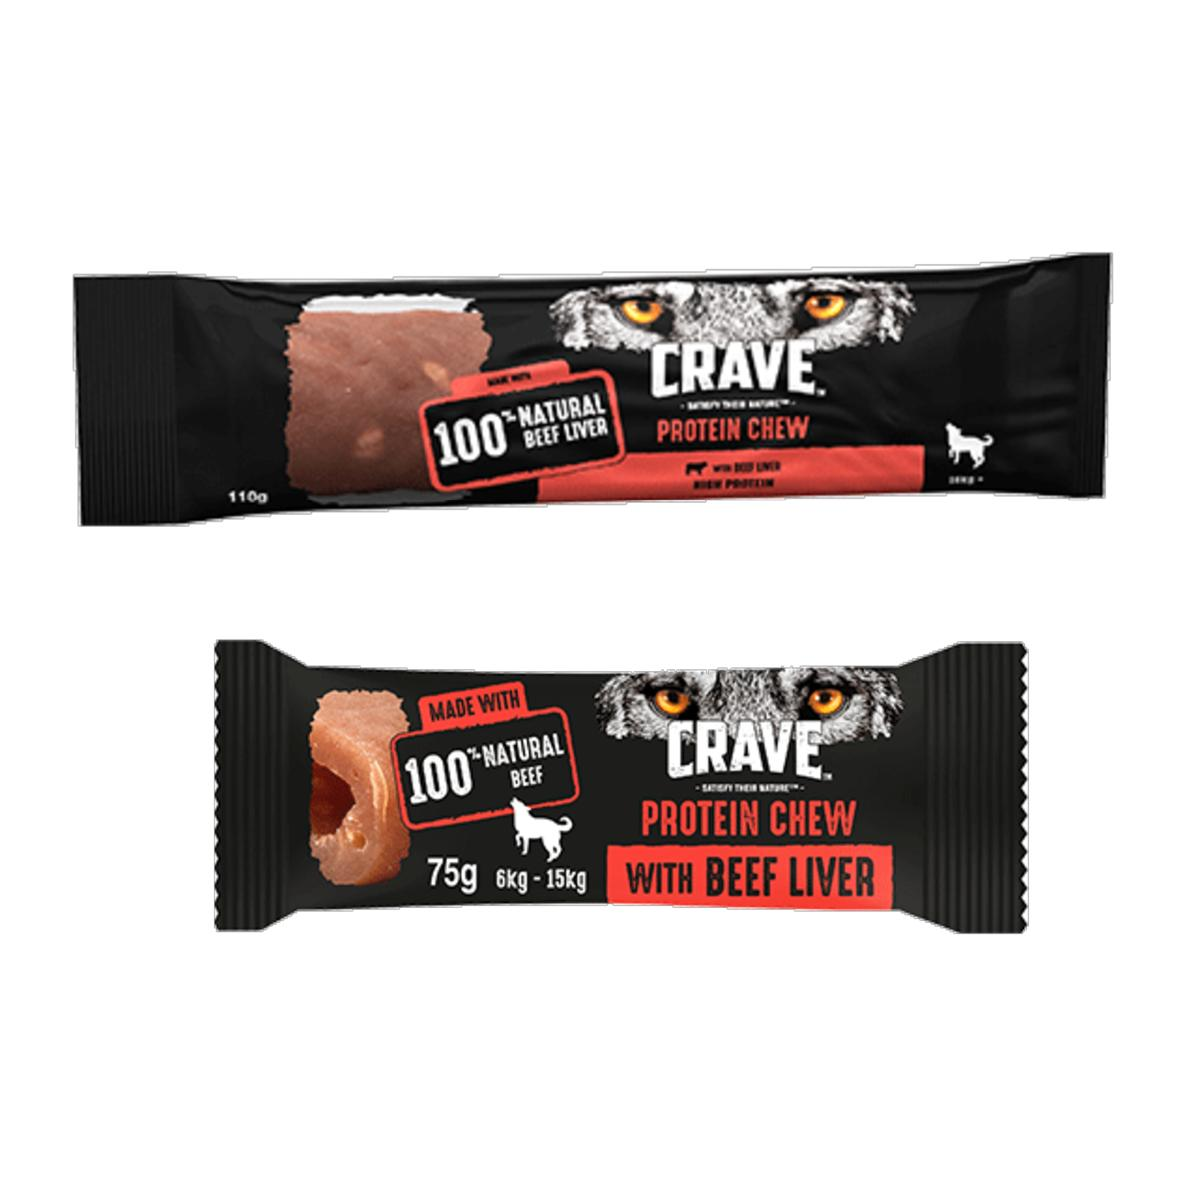 CLEARANCE CRAVE Protein Chew Beef Liver